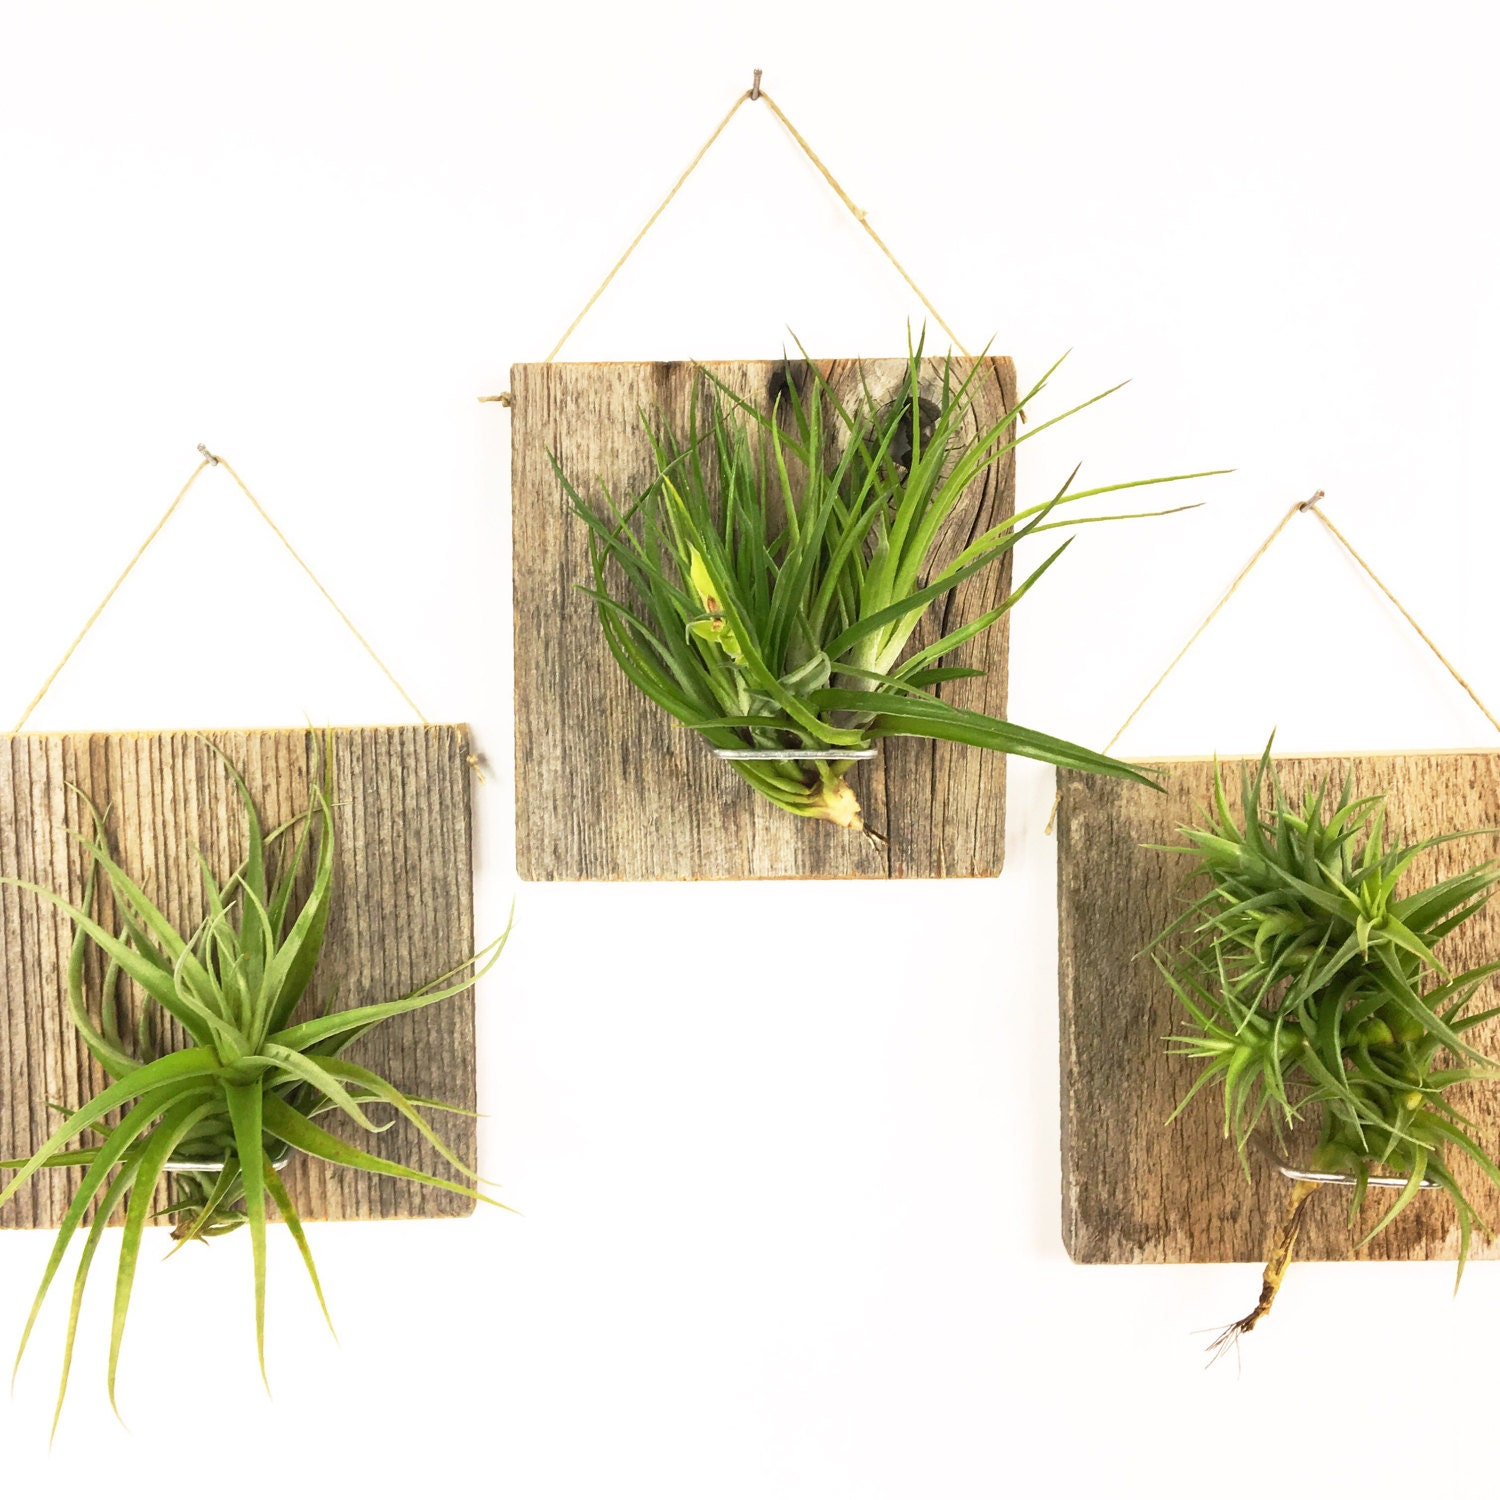 Ensemble de trois grande forme forme forme Air plante et Grange bois Grab Bag airplants, suspendu le support mural 900f88